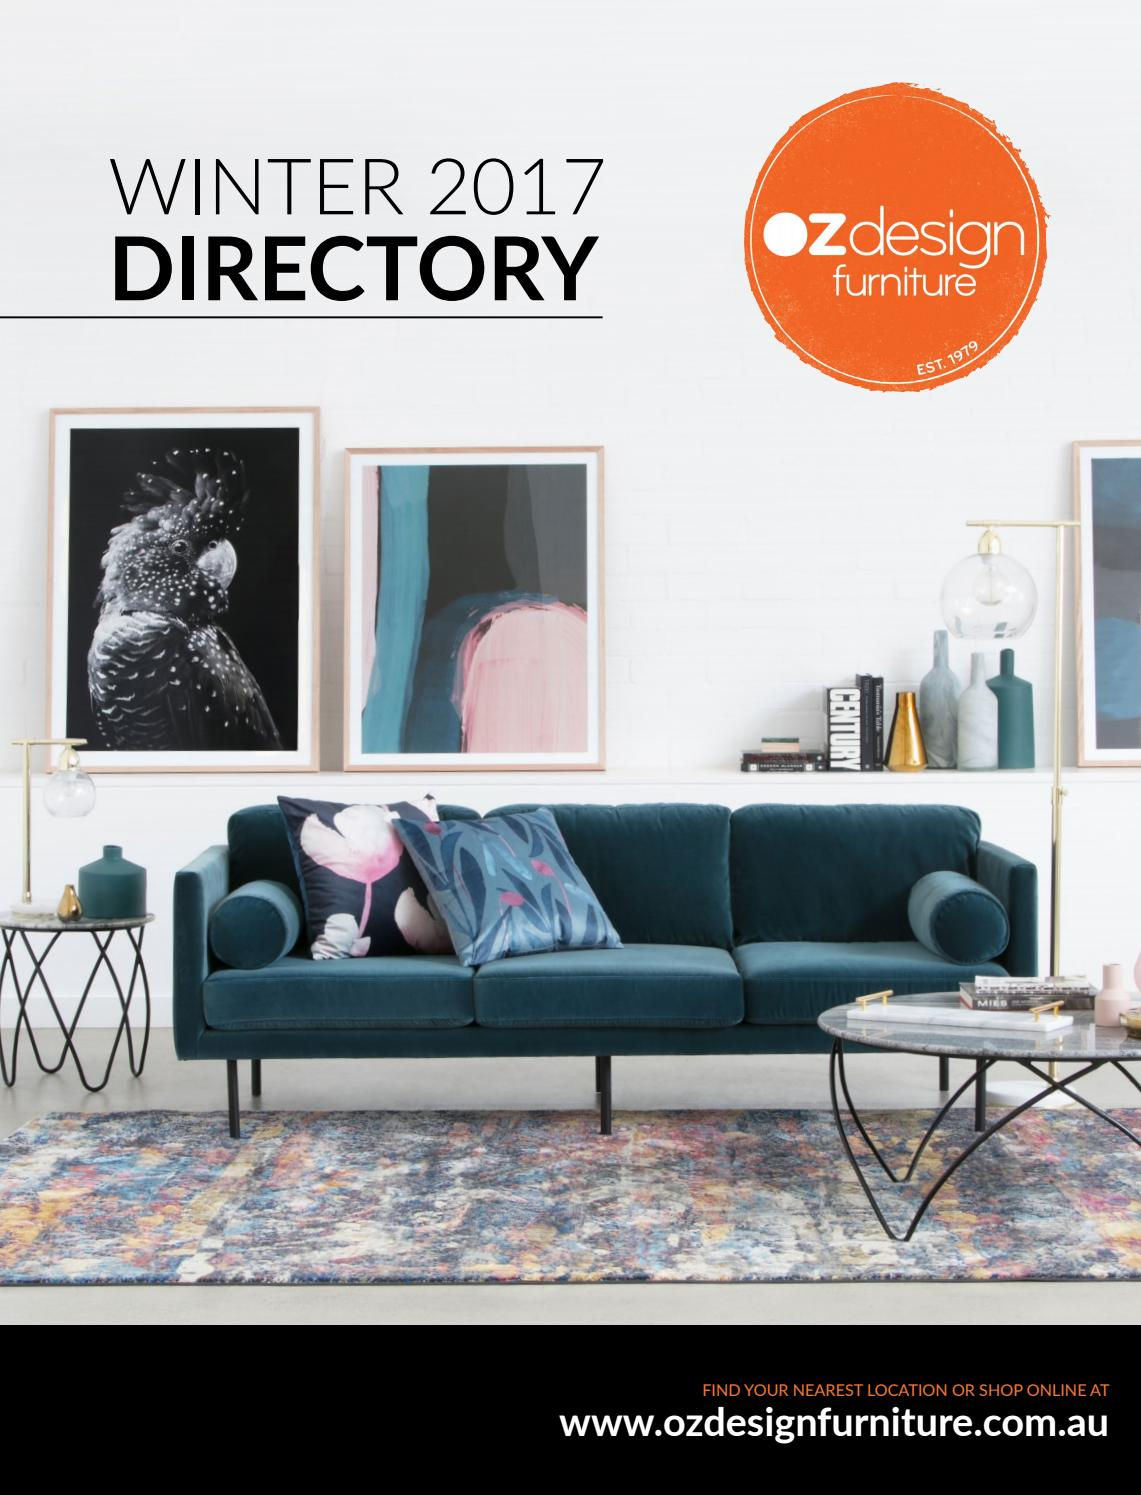 Oz Design Furniture Winter 17 Directory By Oz Design Furniture Issuu